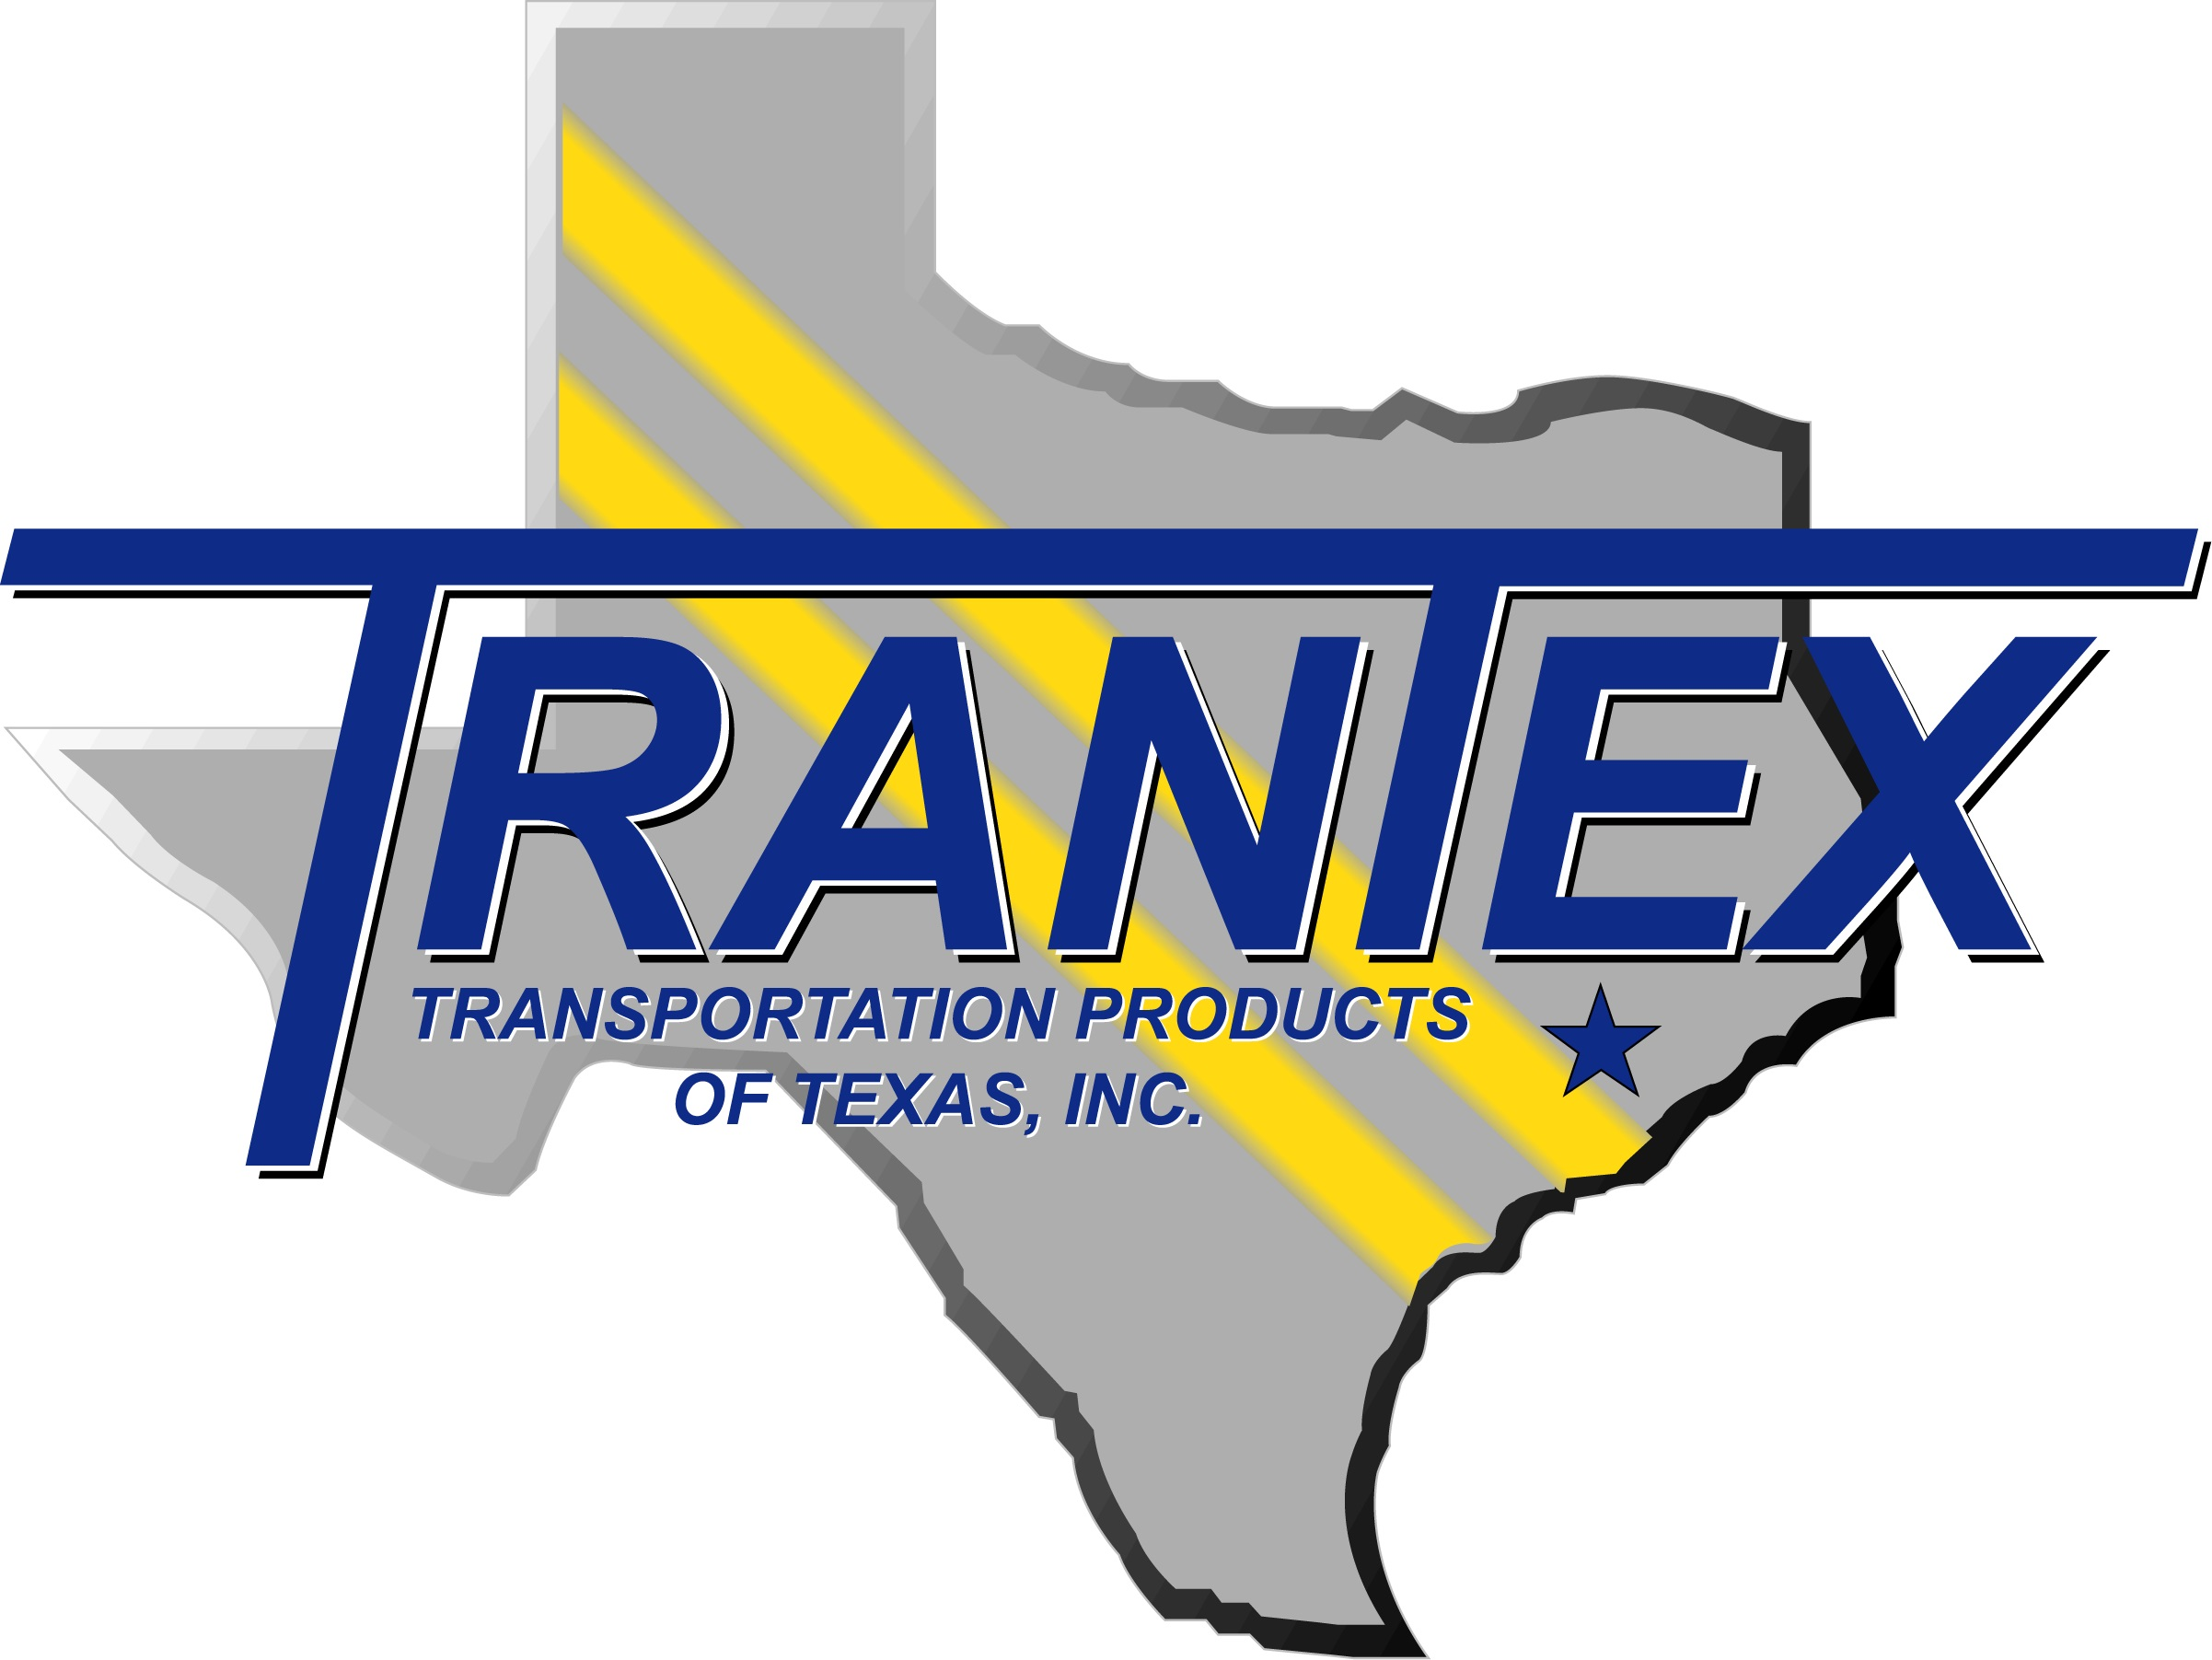 Trantex Transportation Products of Texas Inc